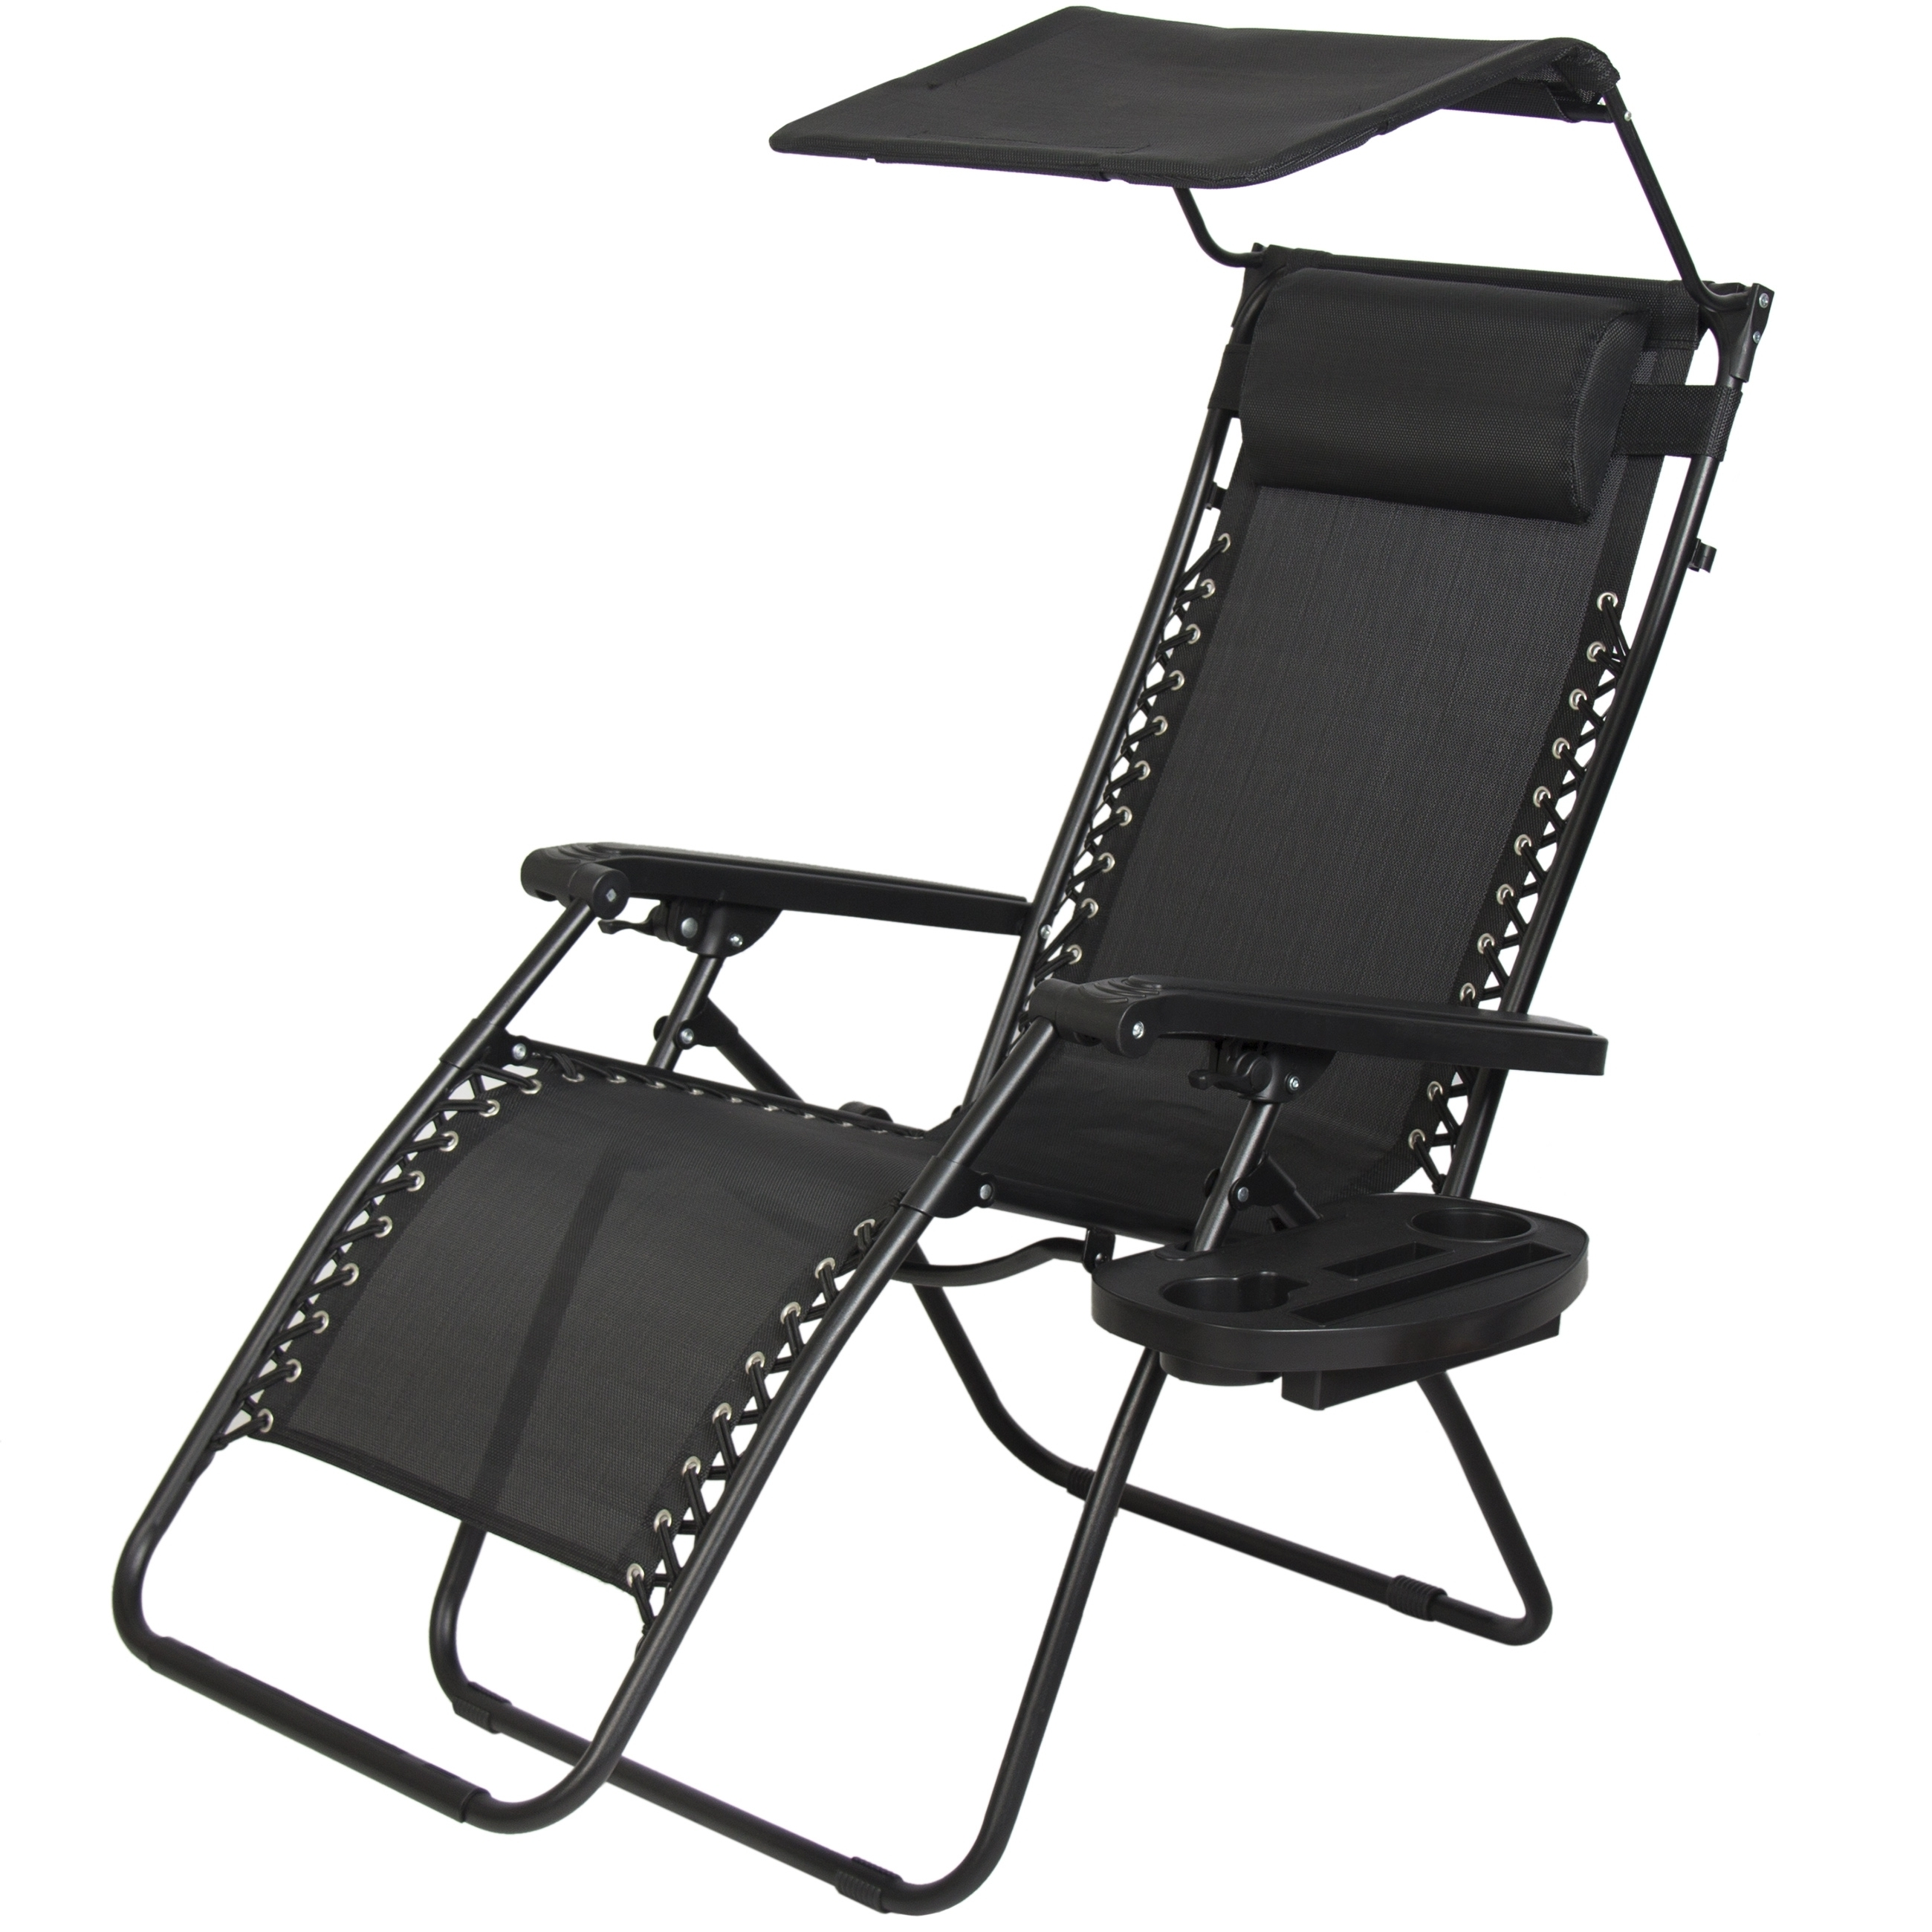 Best Chaise Lounge Chairs The Best Zero Gravity Chaise Lounges